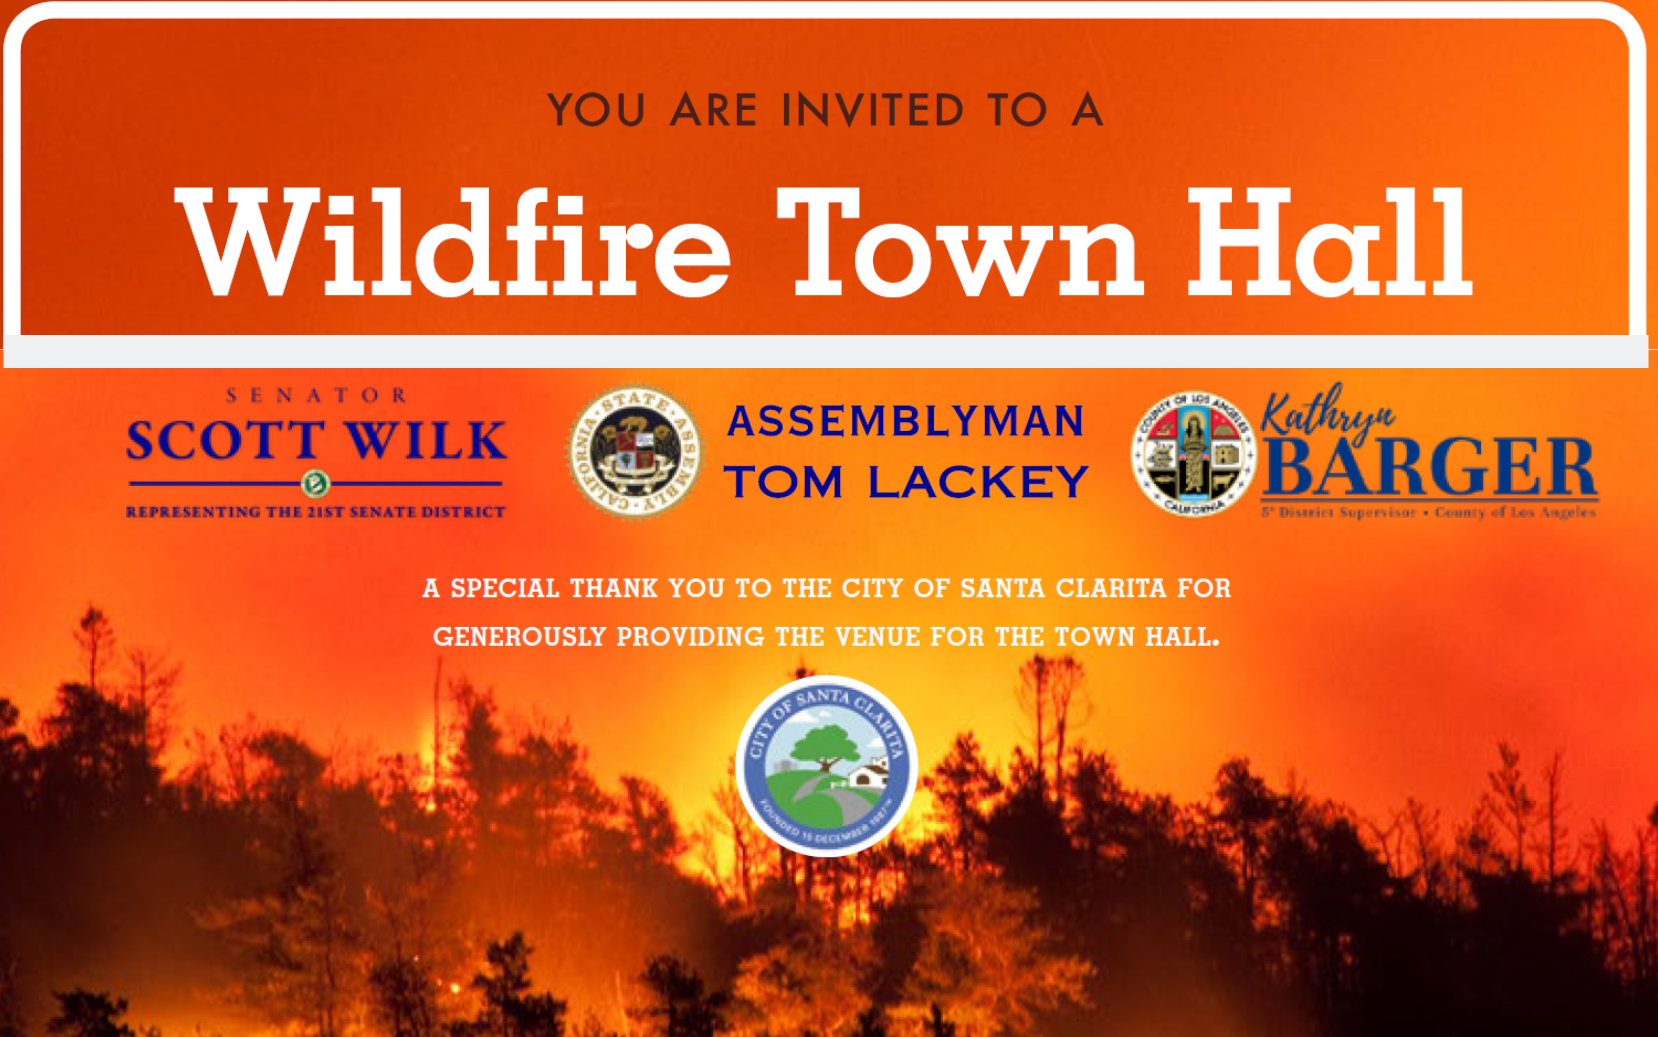 You are invited to a Wildfire Town Hall